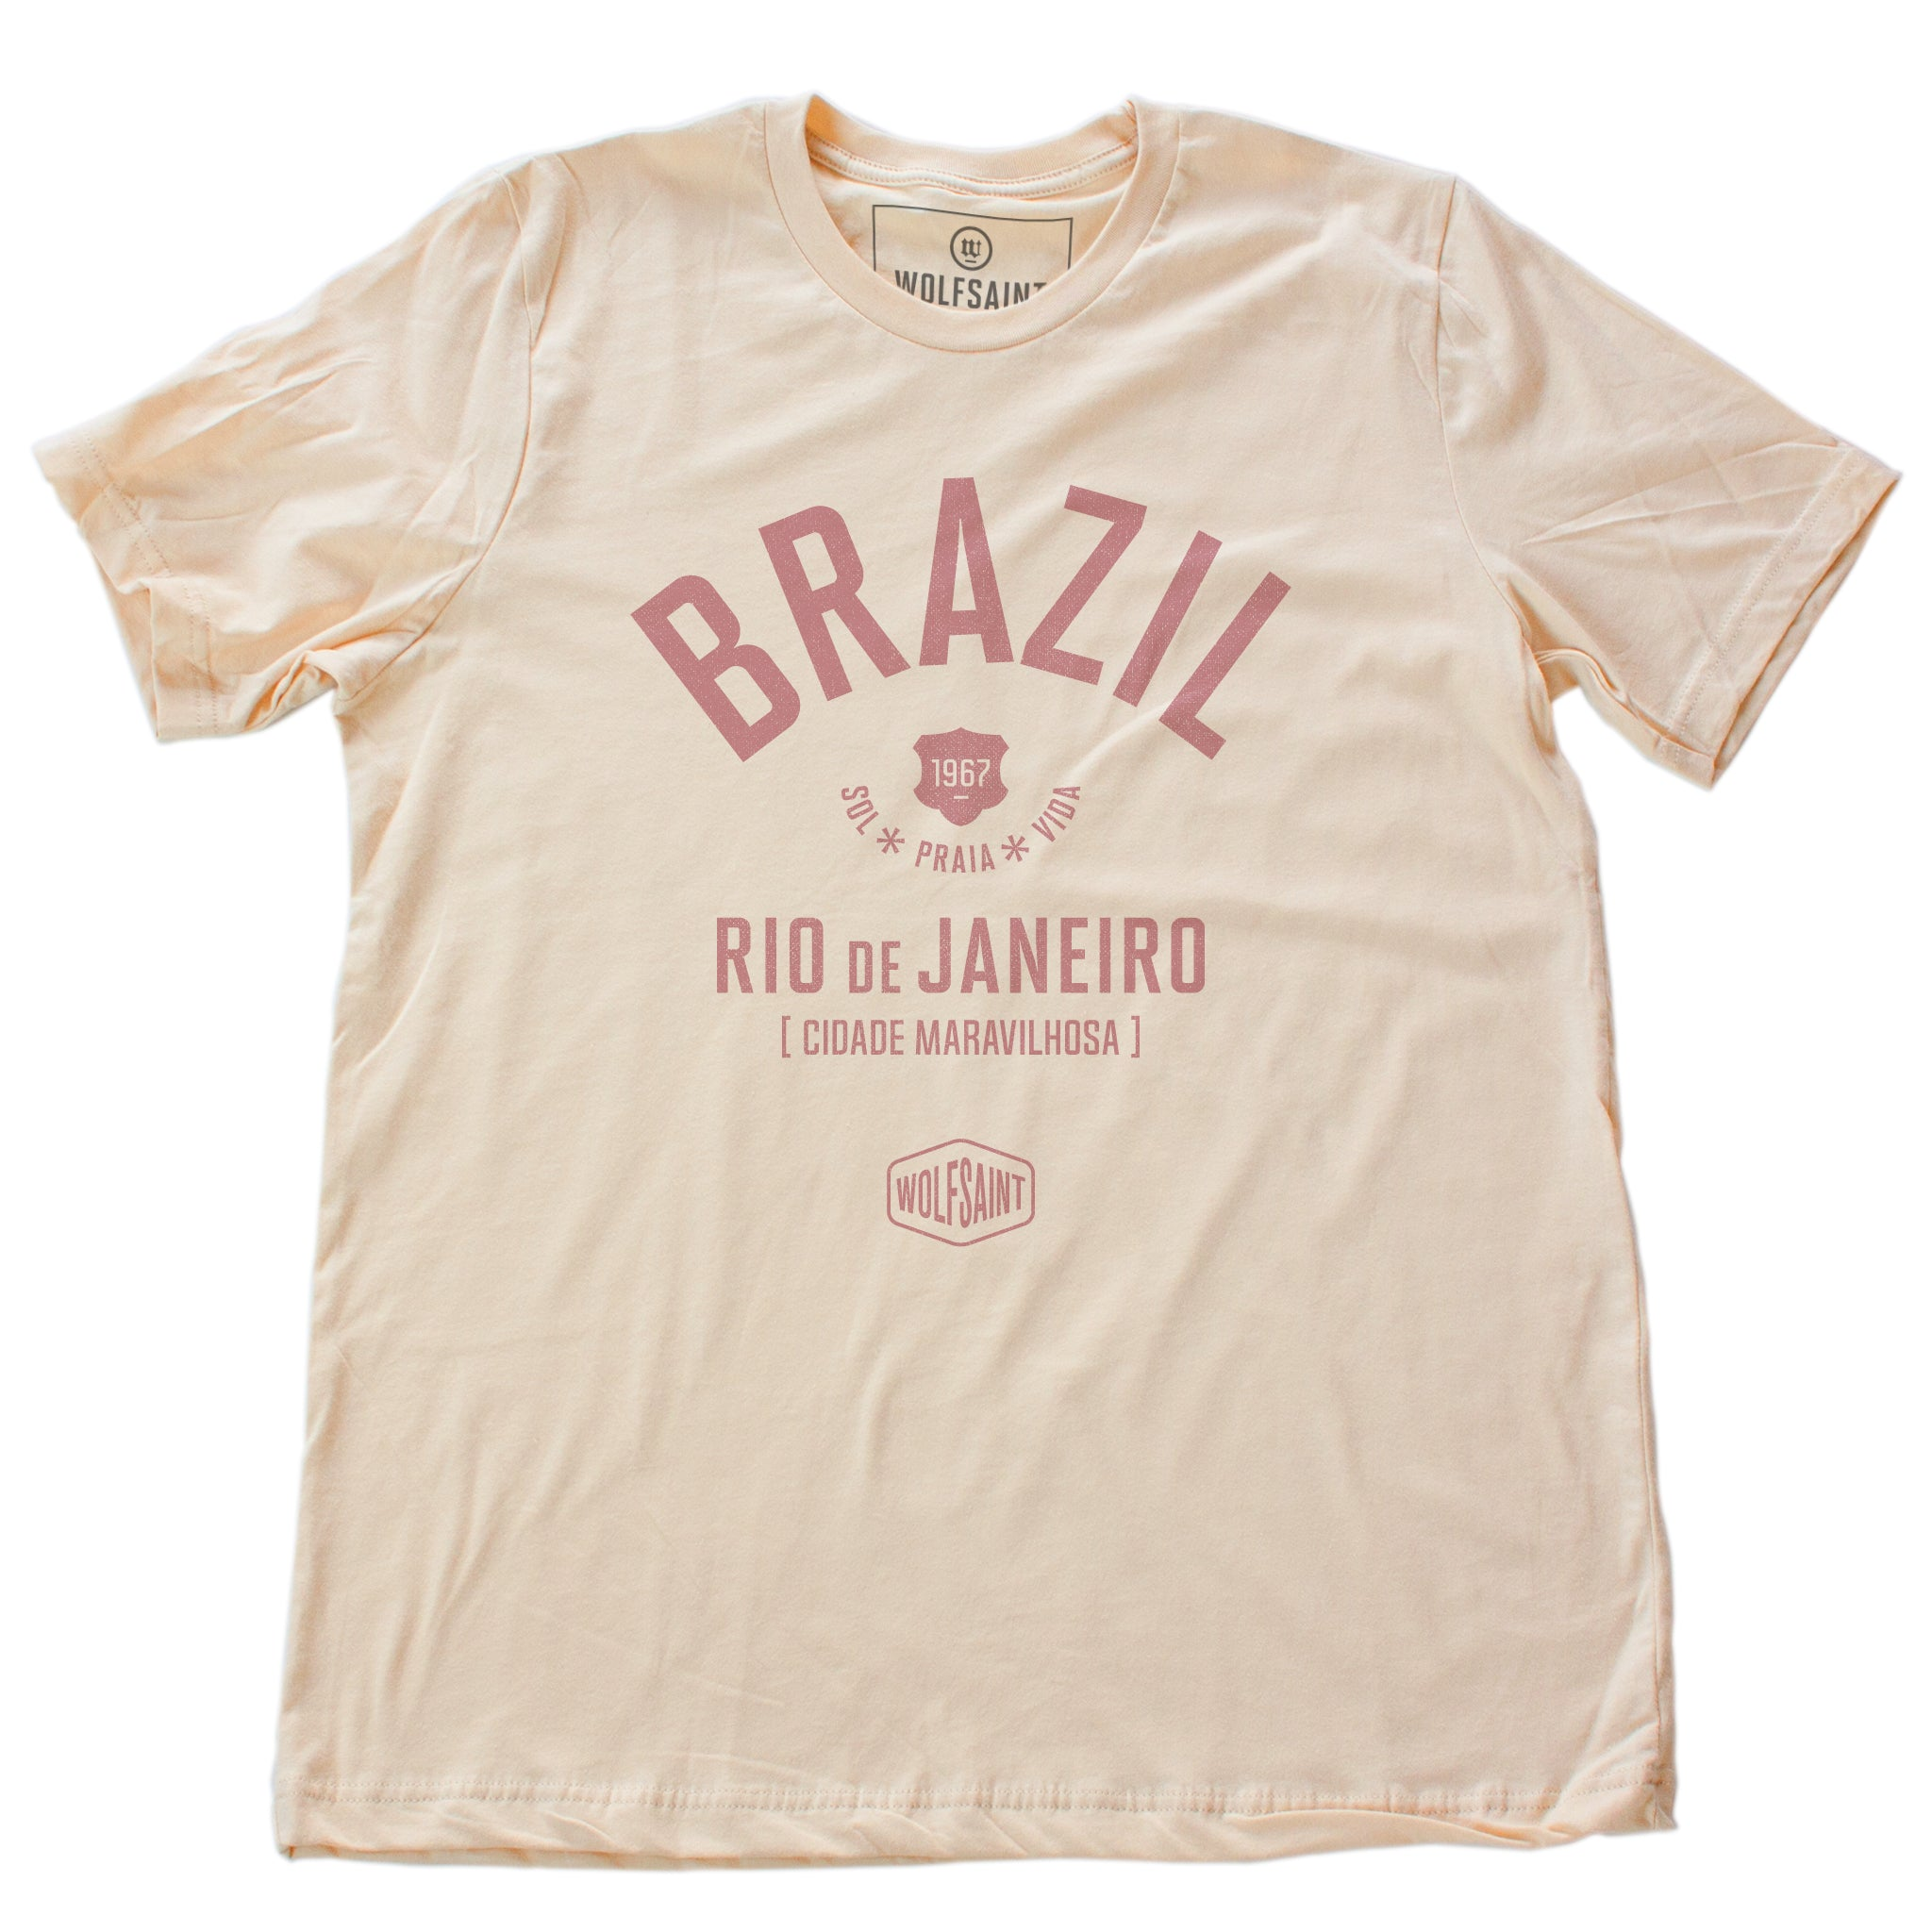 "Soft Cream retro t-shirt with classic typography and graphic of BRAZIL (Brasil) and Rio de Janeiro, ""Cidade Maravilhosa"" (The Marvelous City) by brand Wolfsaint, with the date 1967, and sun, beach, life in Portuguese (Sol Praia Vida). From wolfsaint.net"